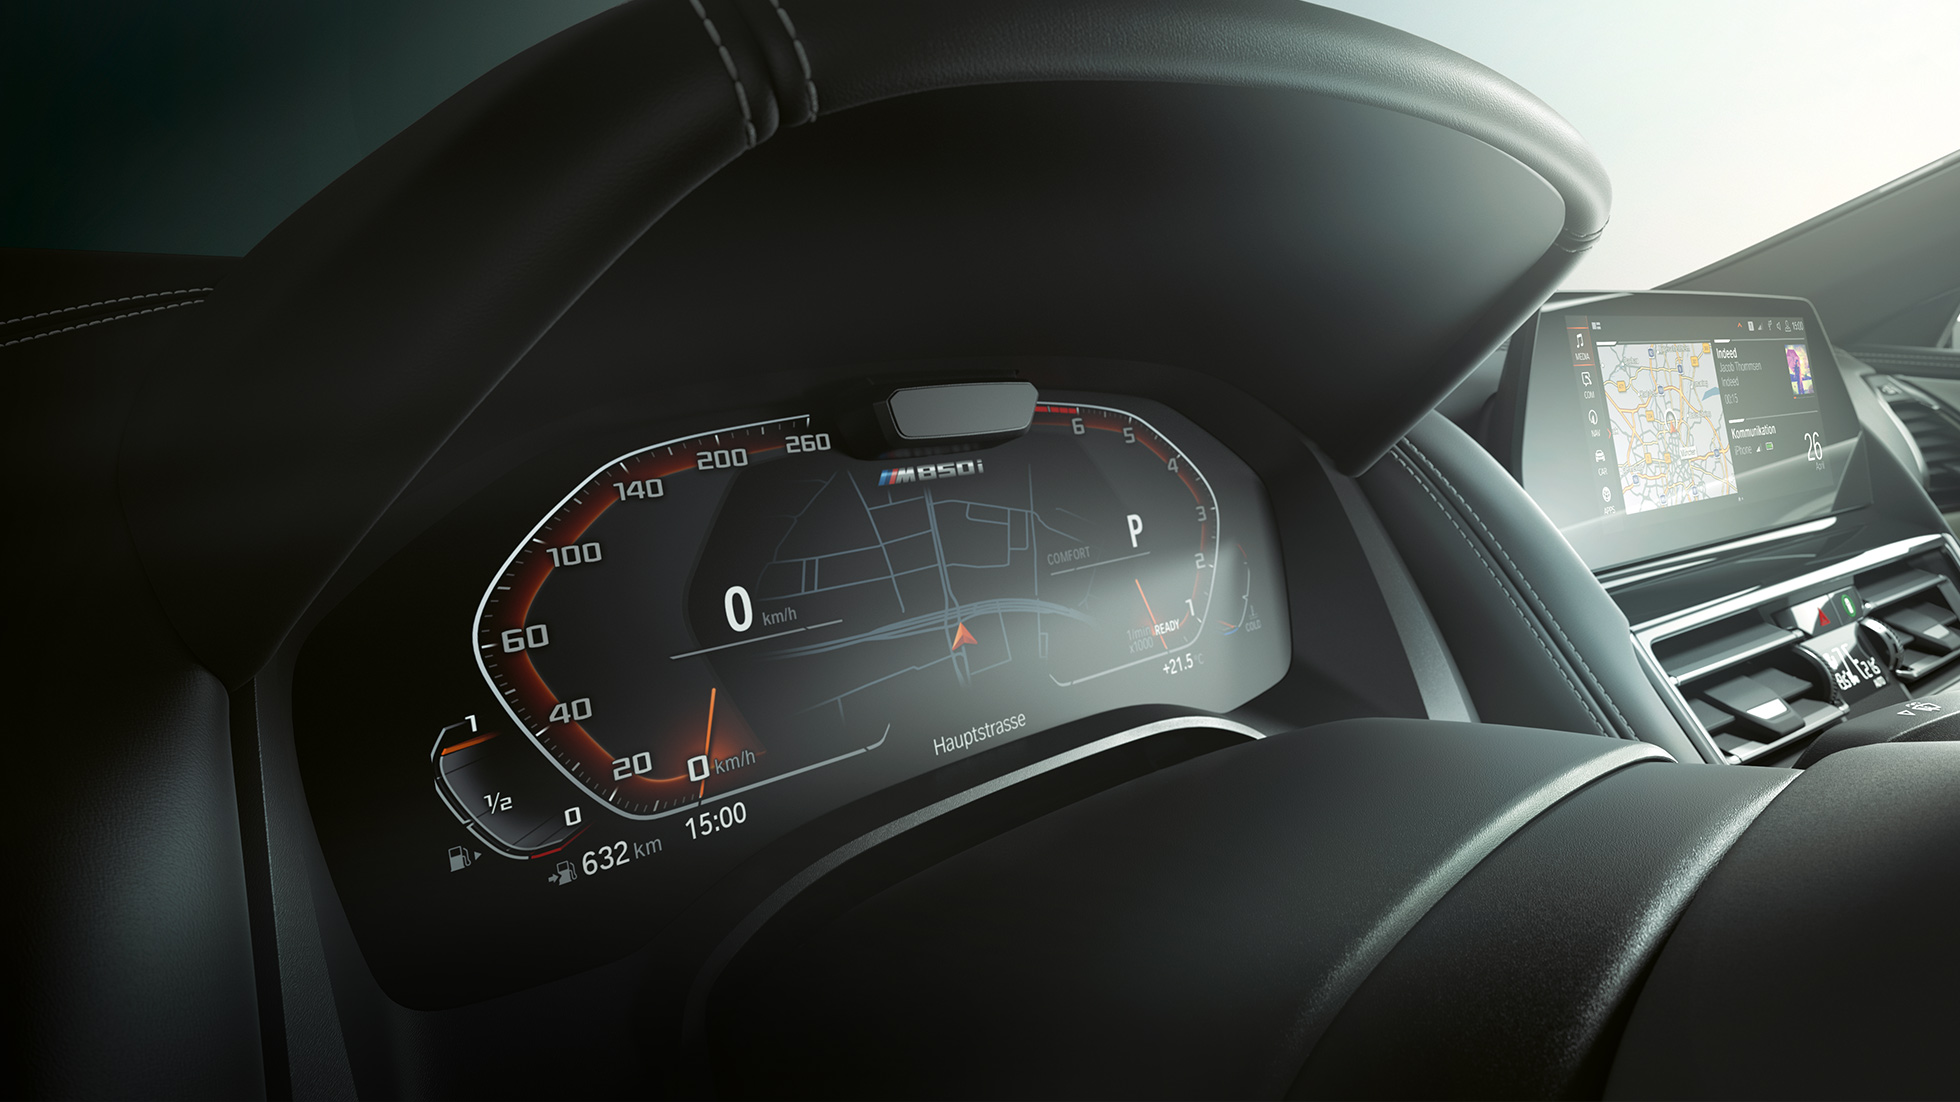 BMW M850i xDrive, instrumentdisplay, Driving Assistant Plus.